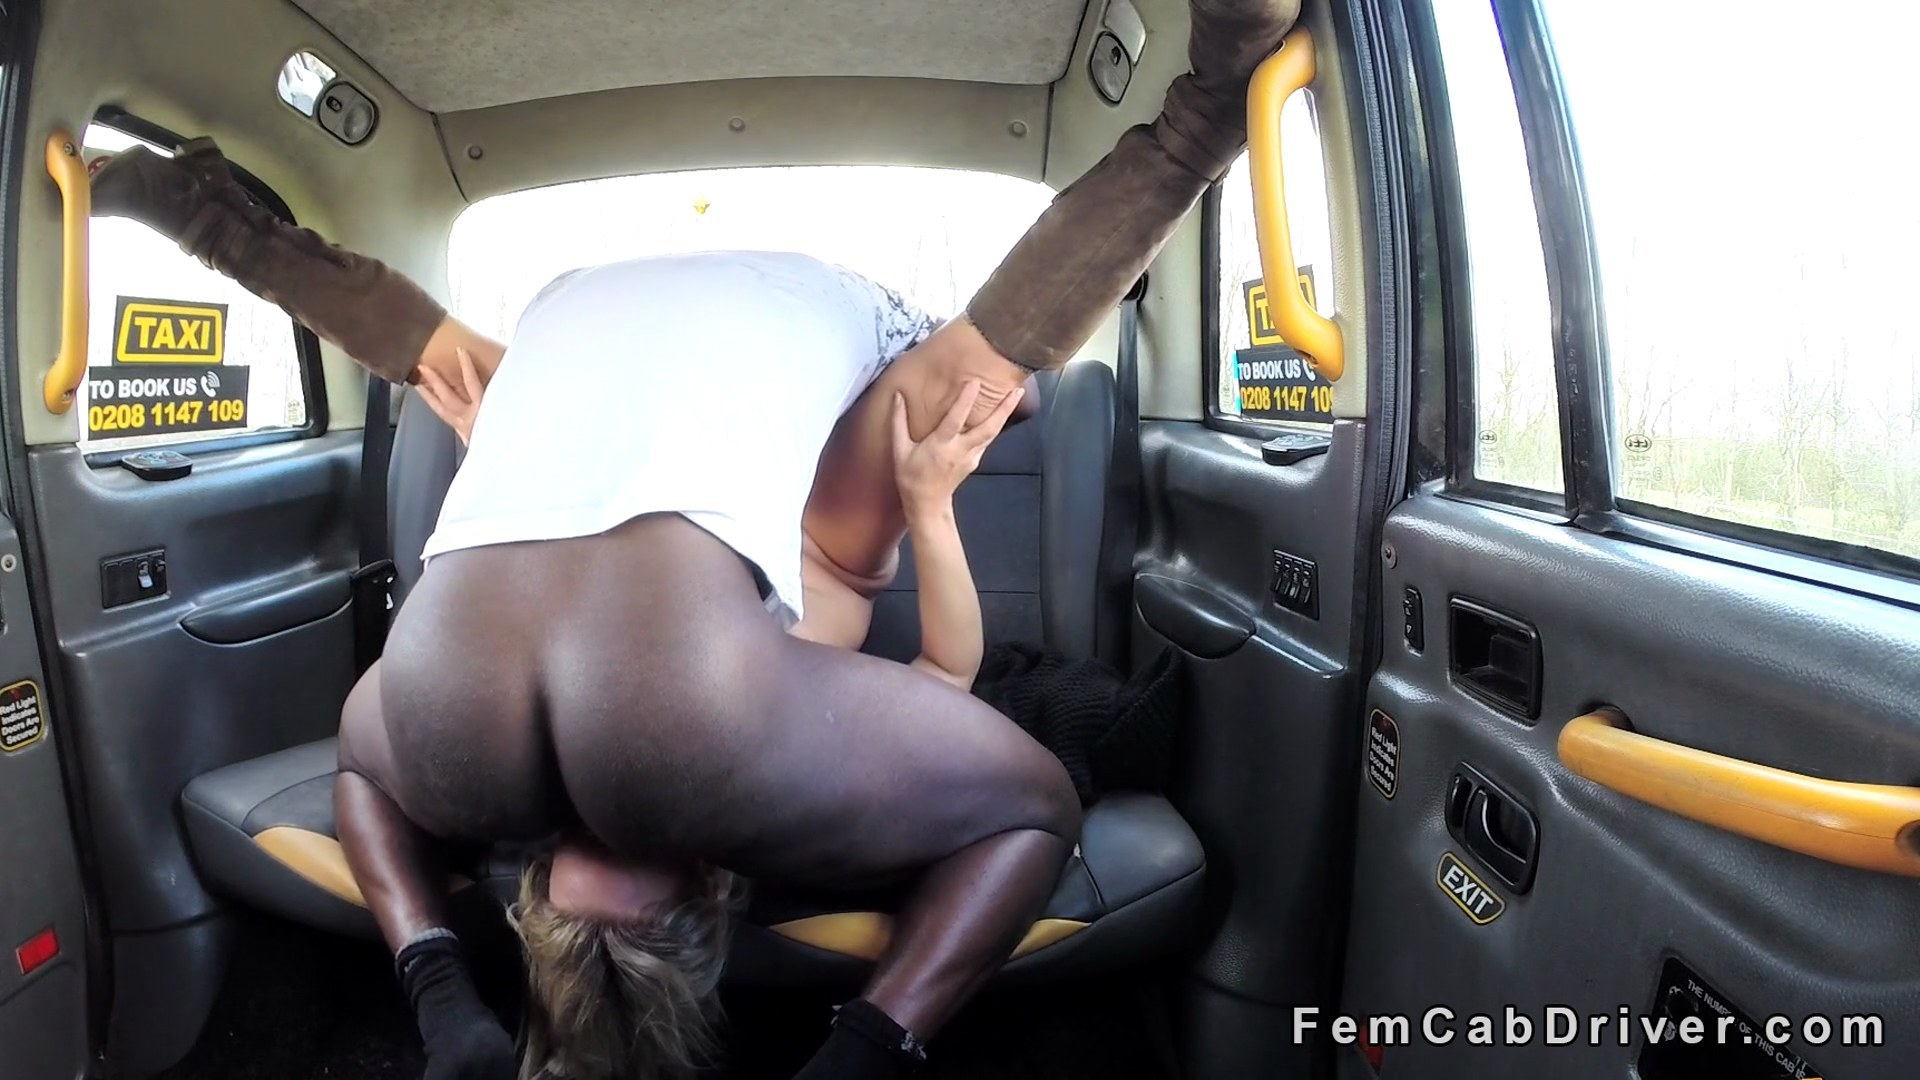 Female Fake Taxi Soldier